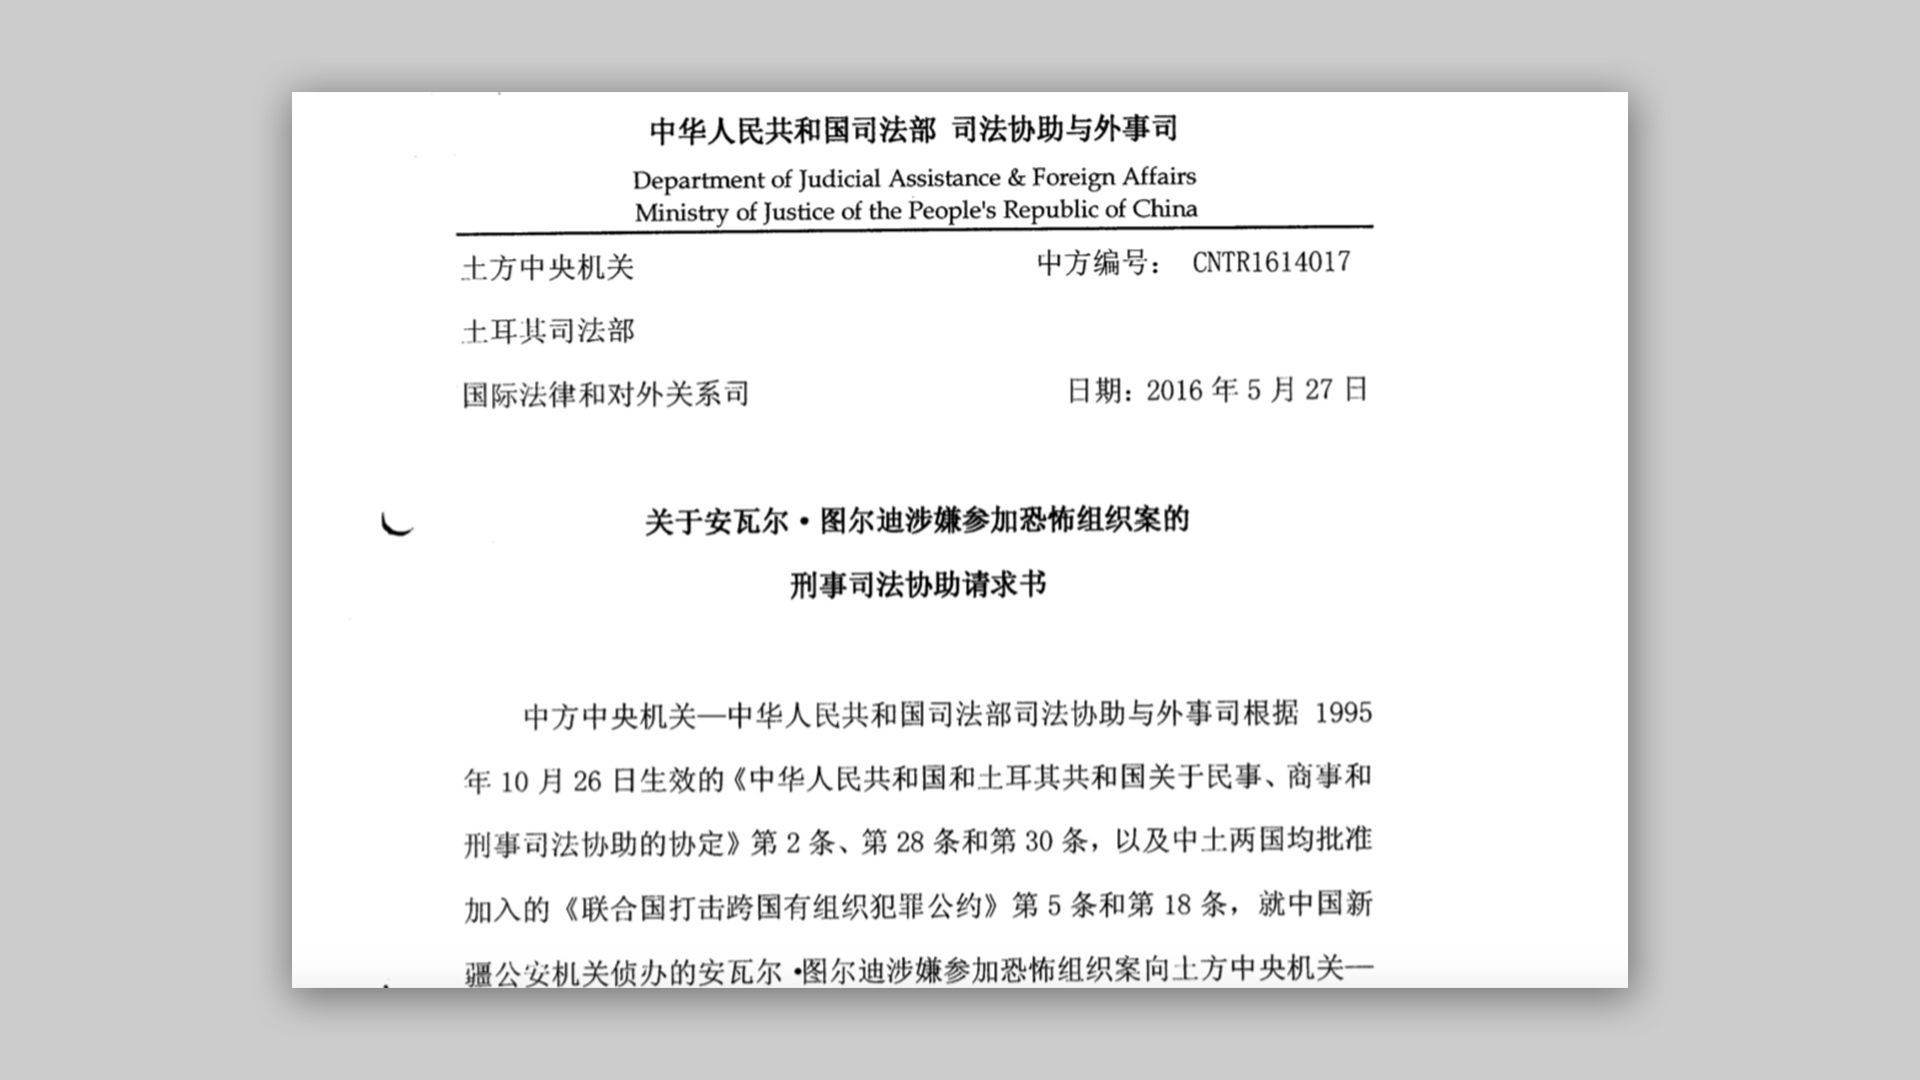 An image of one page of a Chinese government extradition request.